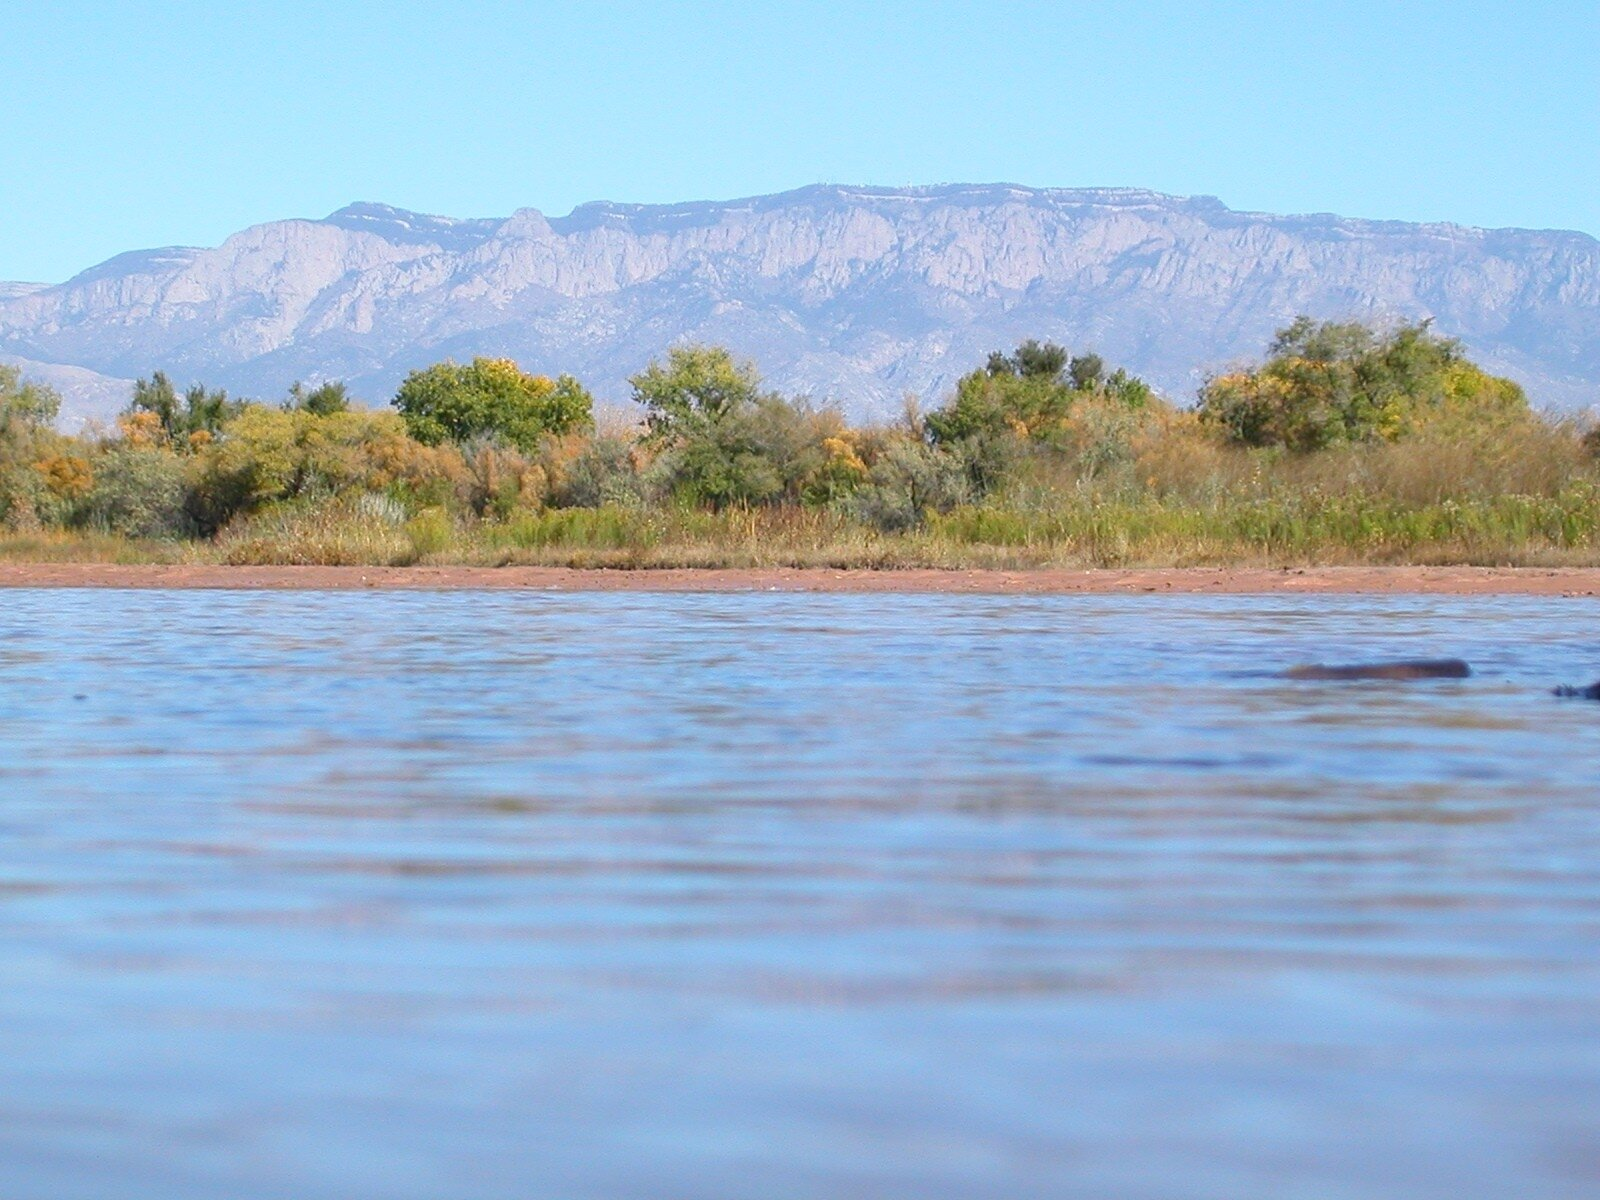 Sandia Crest as seen from the Rio Grande's protected riparian bosque. (photo by Matt Schmader)